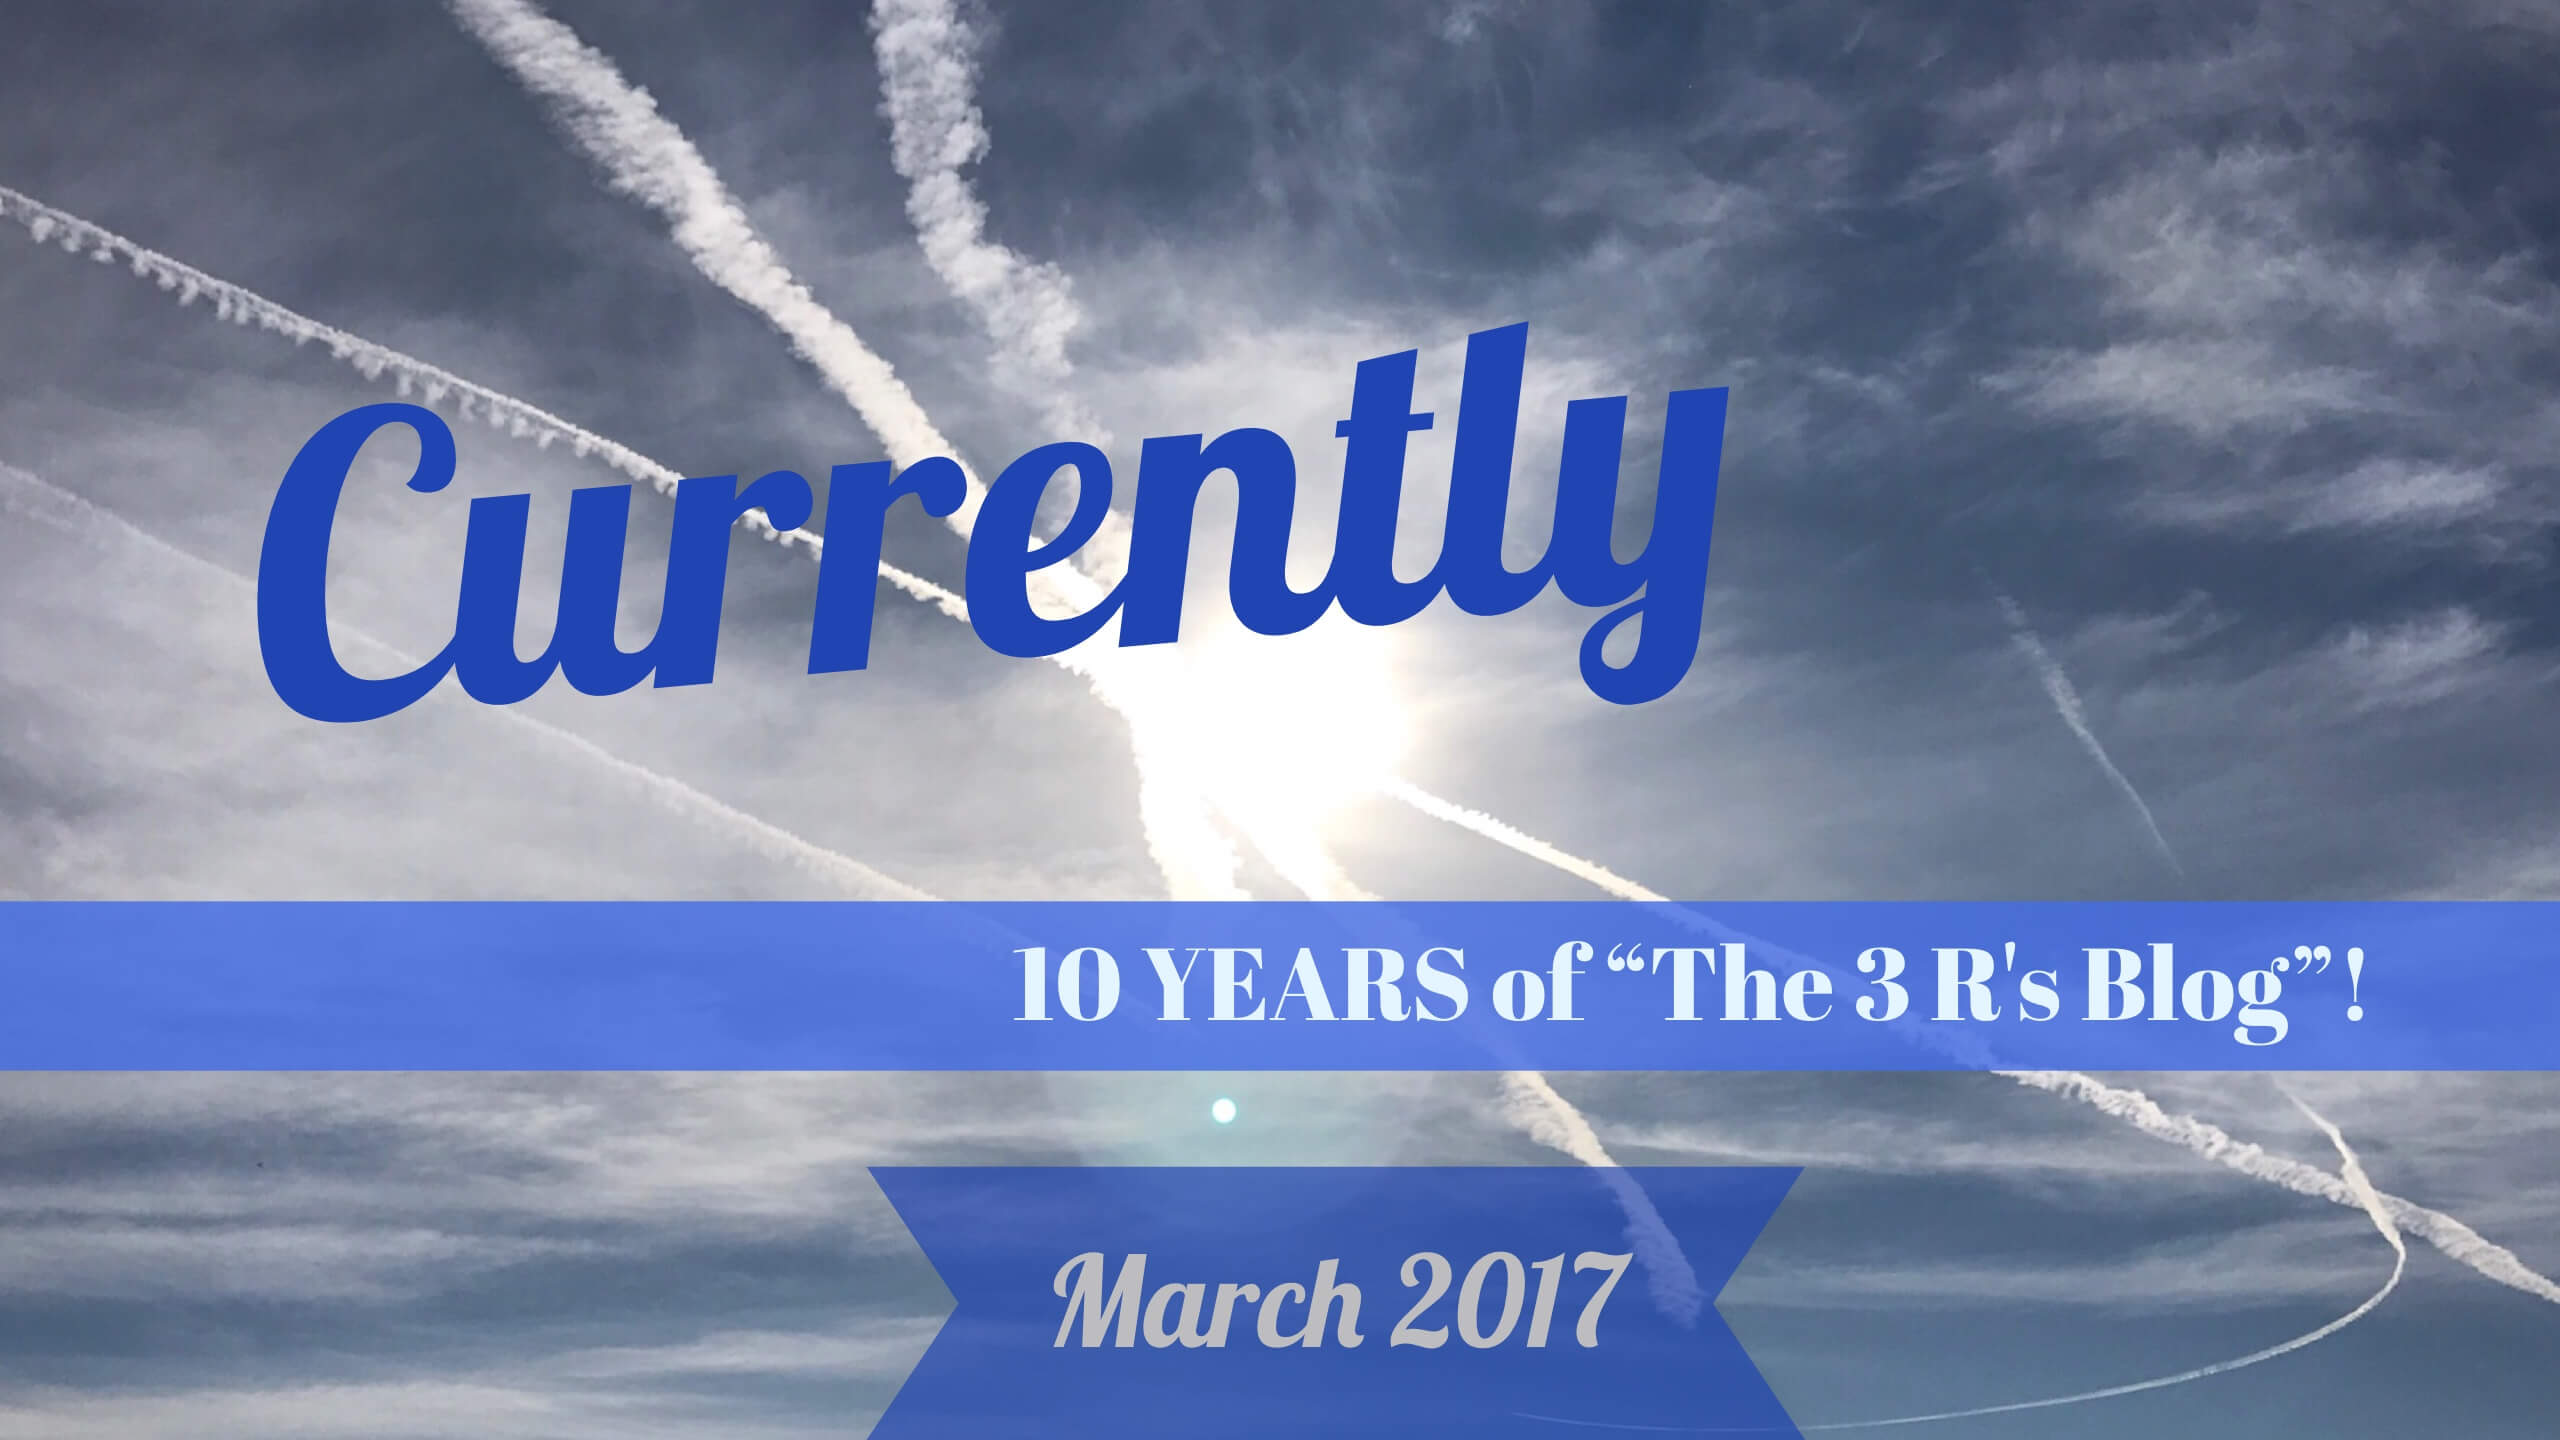 10 years of The 3 Rs Blog